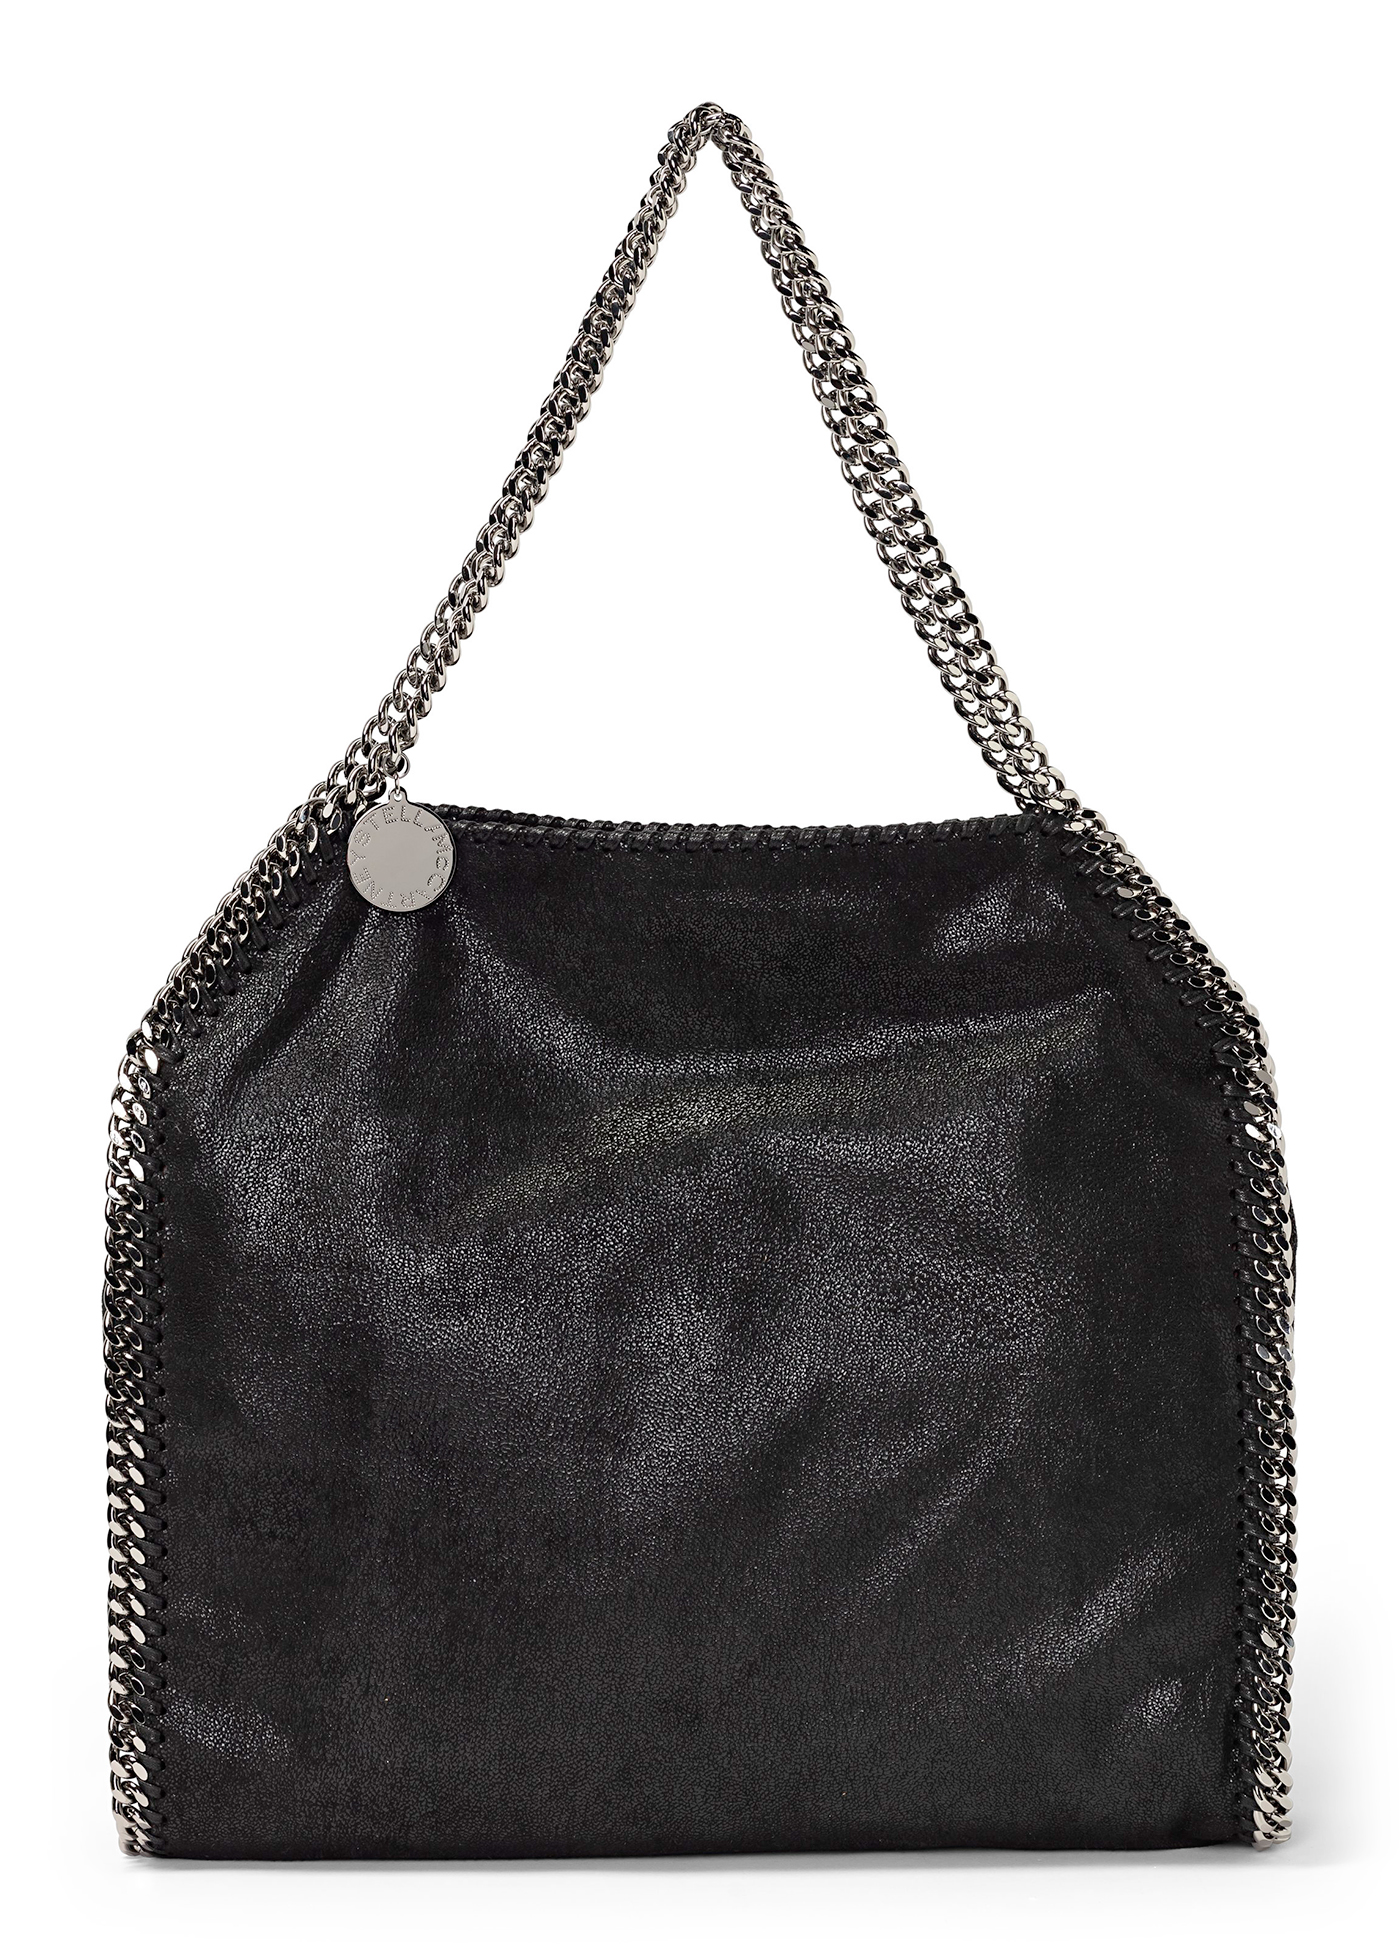 SMALL TOTE FALABELLA image number 0